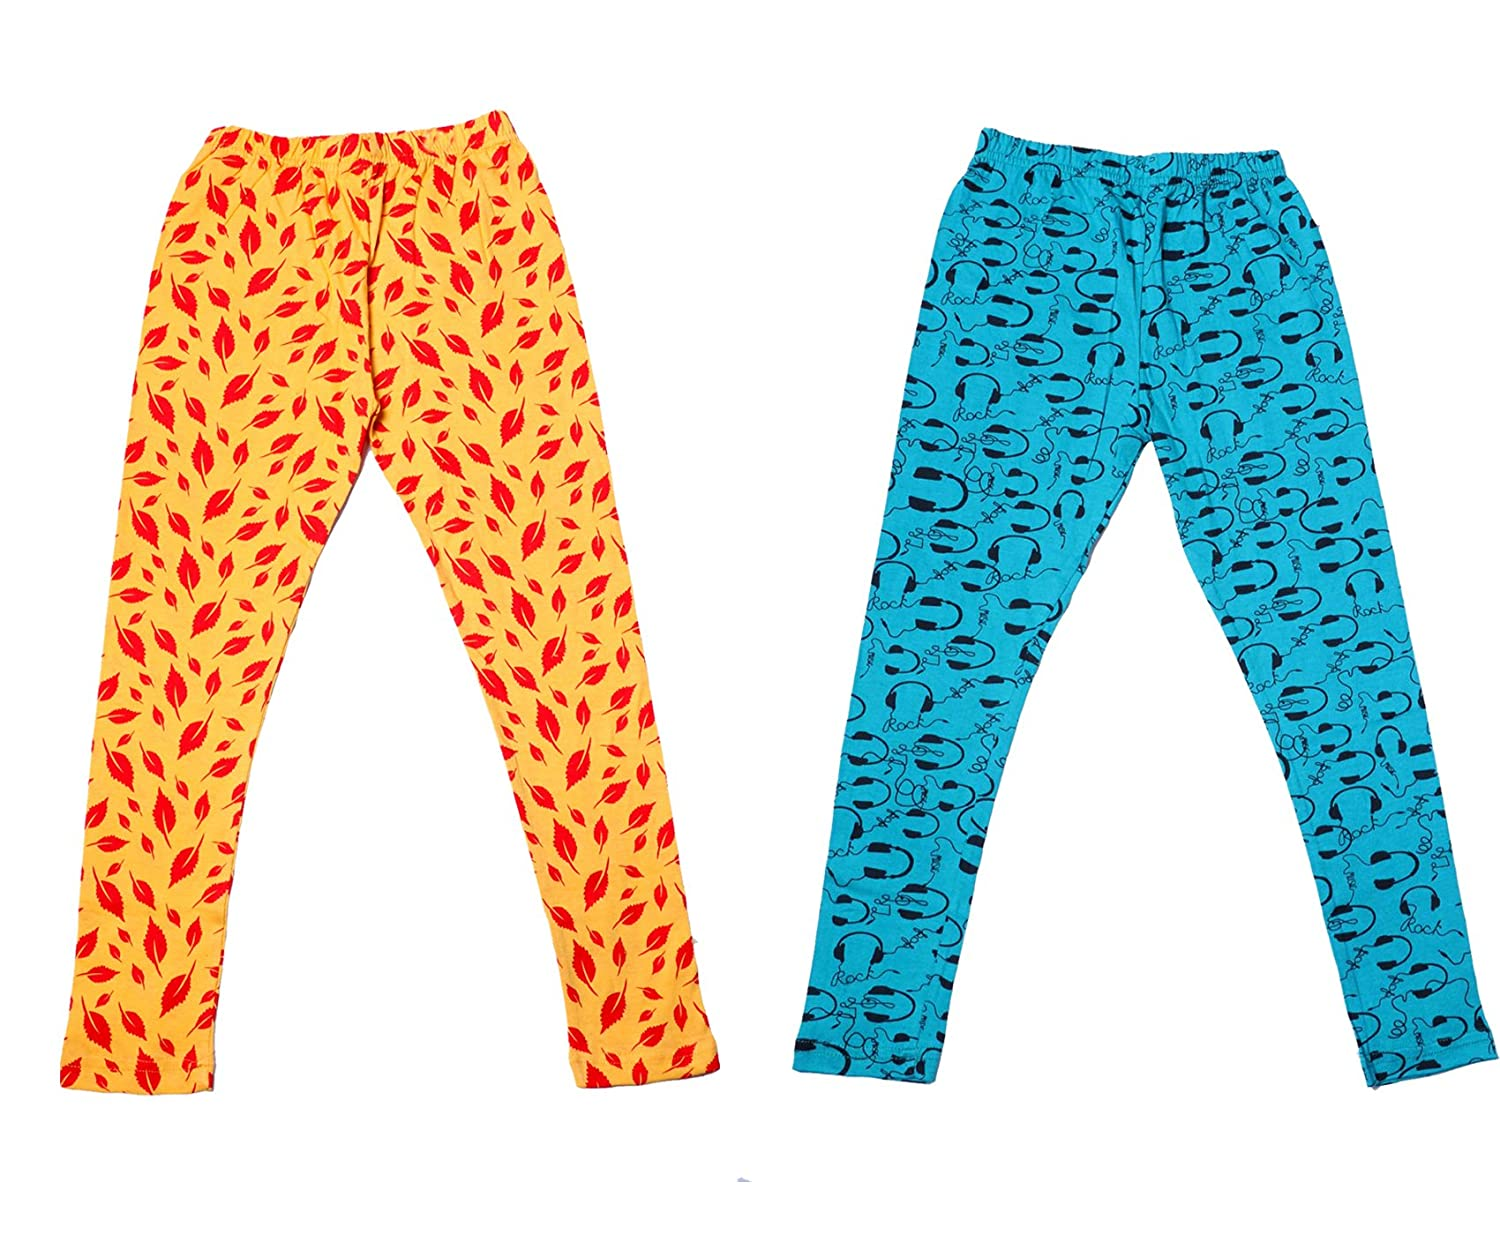 indiWeaves Girls Super Soft and Stylish Cotton Printed Legging Pack Of 2